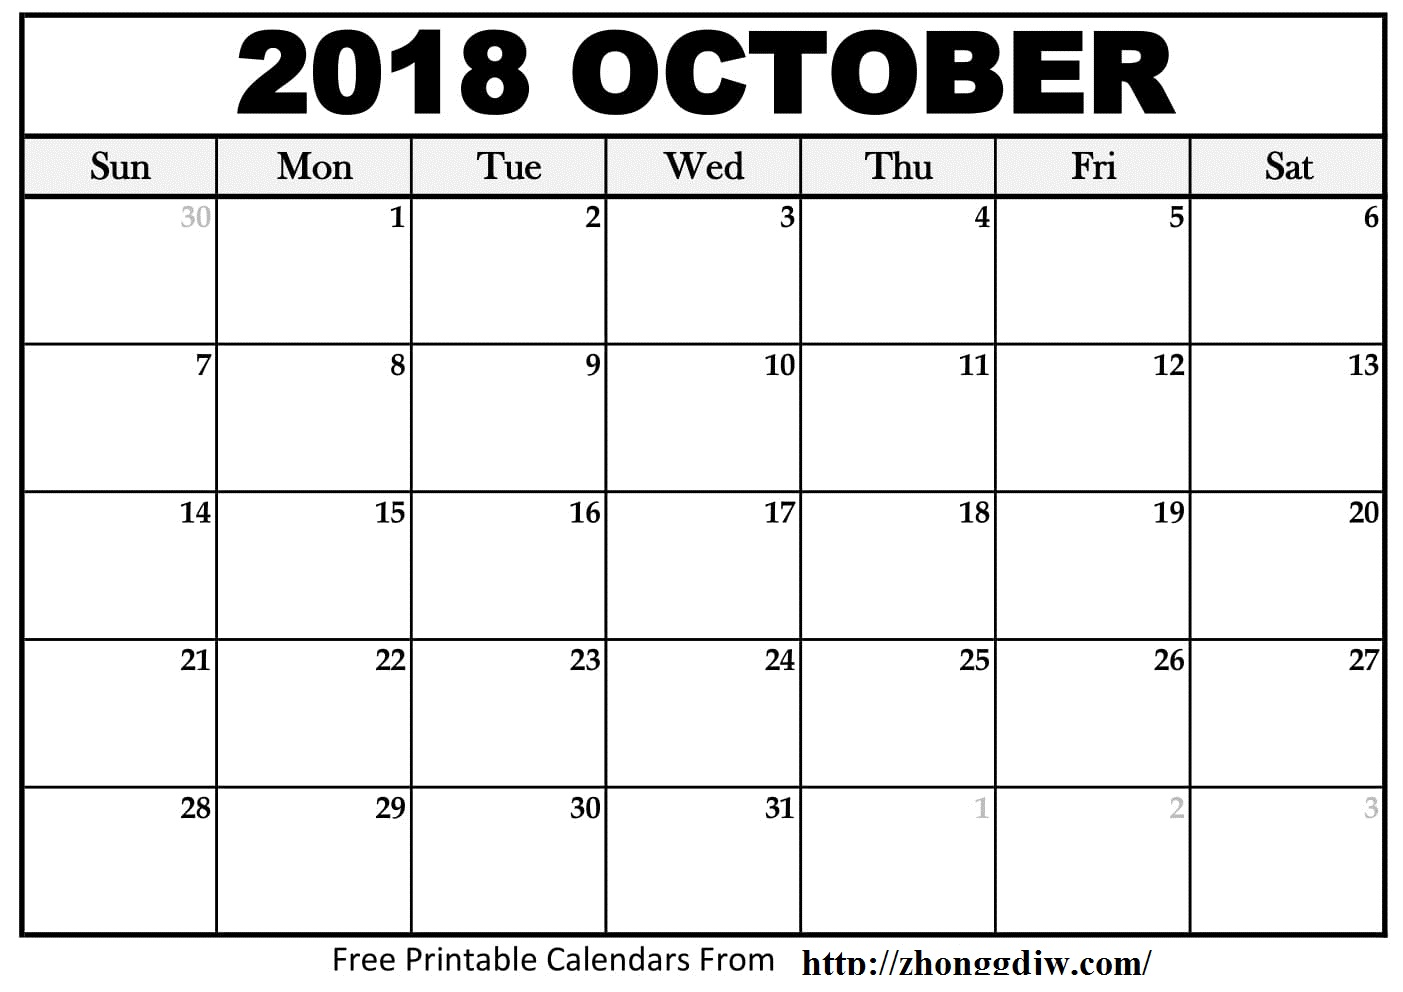 graphic relating to Oct Calendar Printable Pdf called Oct 2018 Calendar PDF - Cost-free August 2019 Calendar